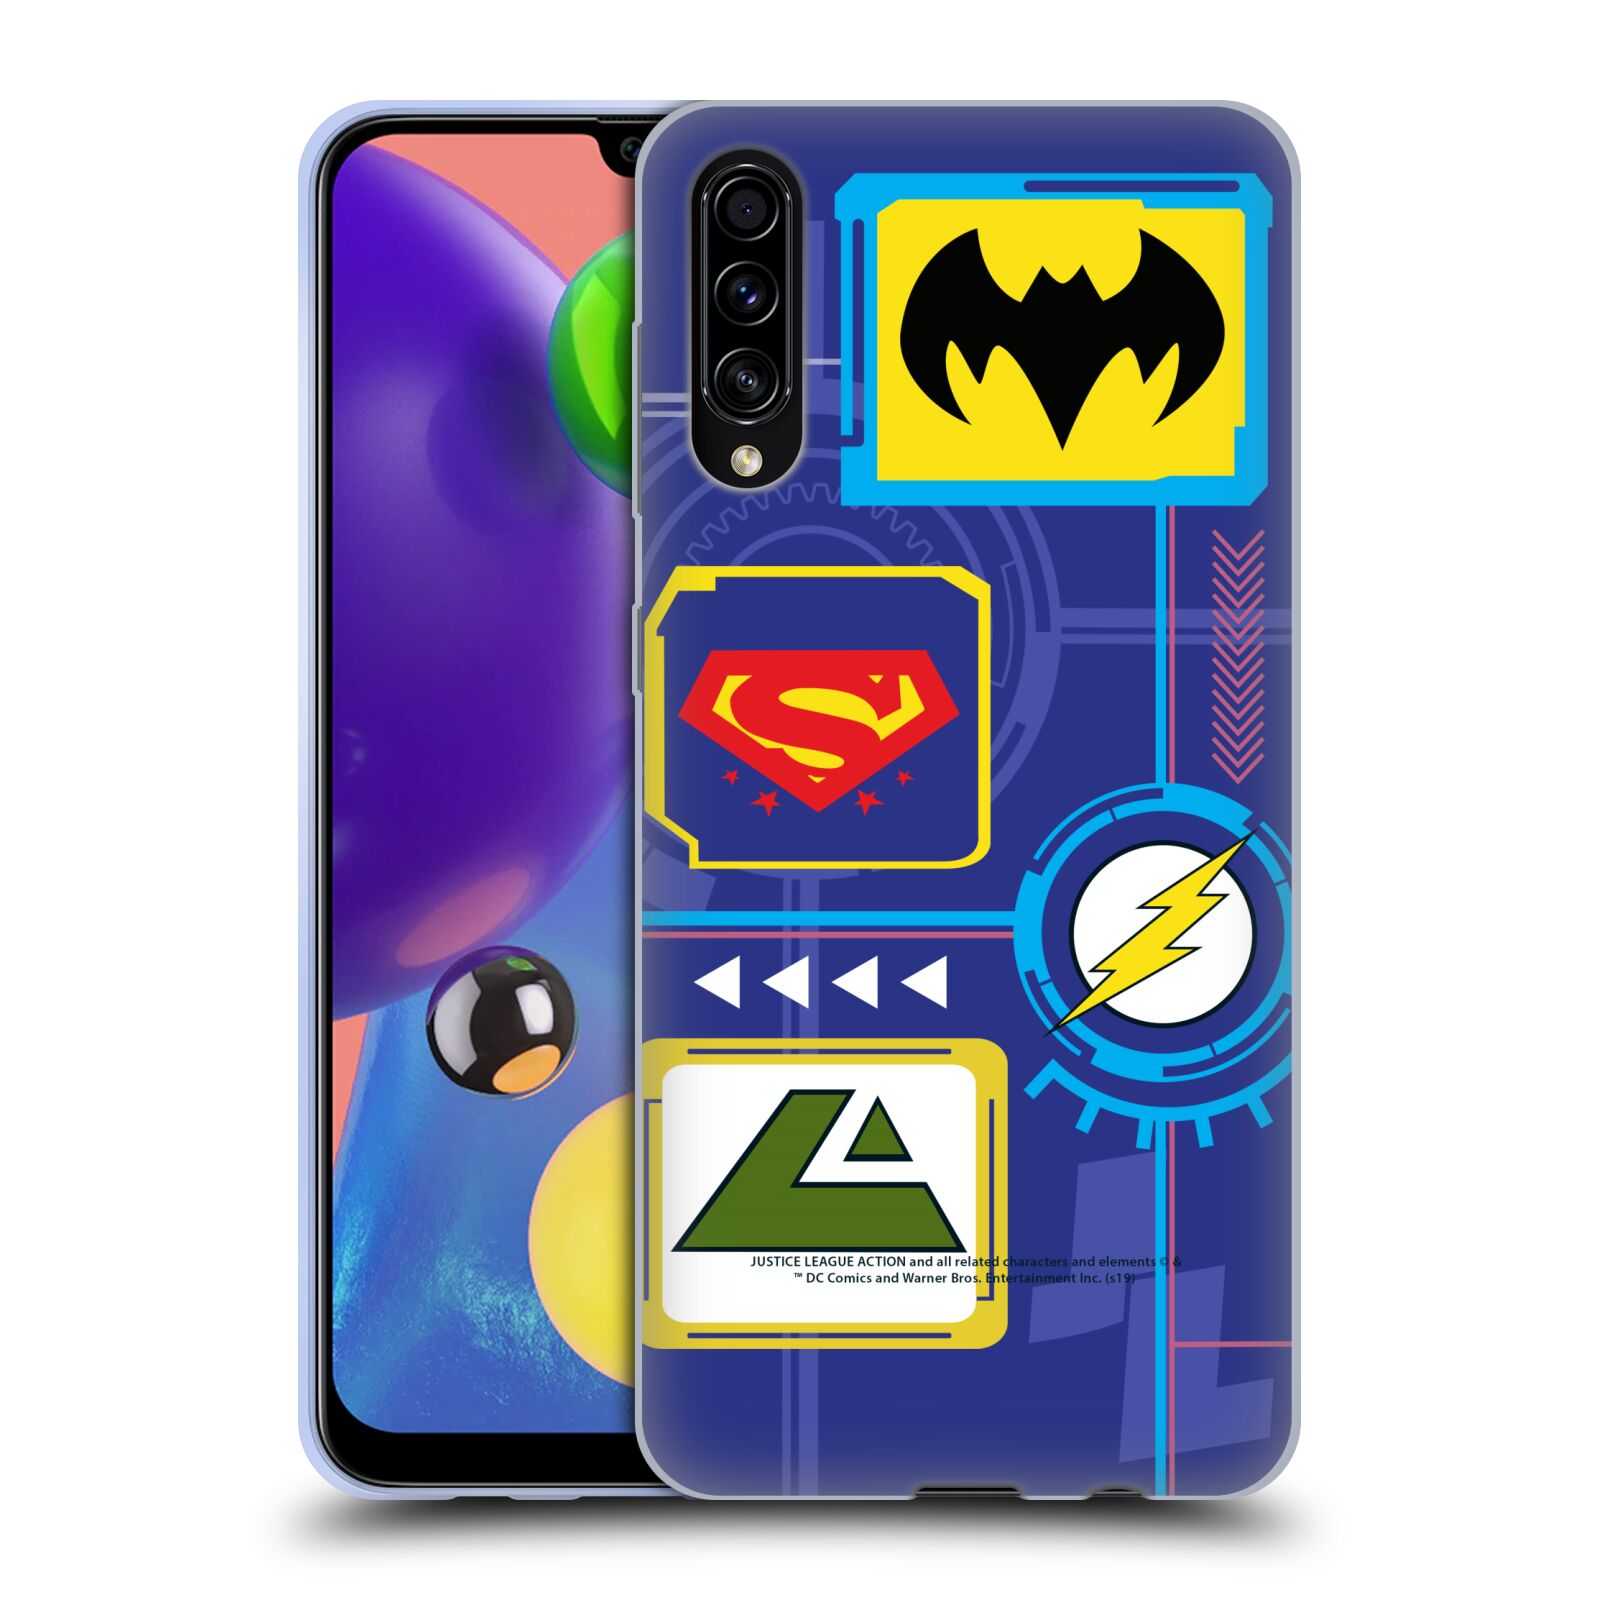 Official Justice League Action Logos Digital Gel Case for Samsung Galaxy A70s (2019)